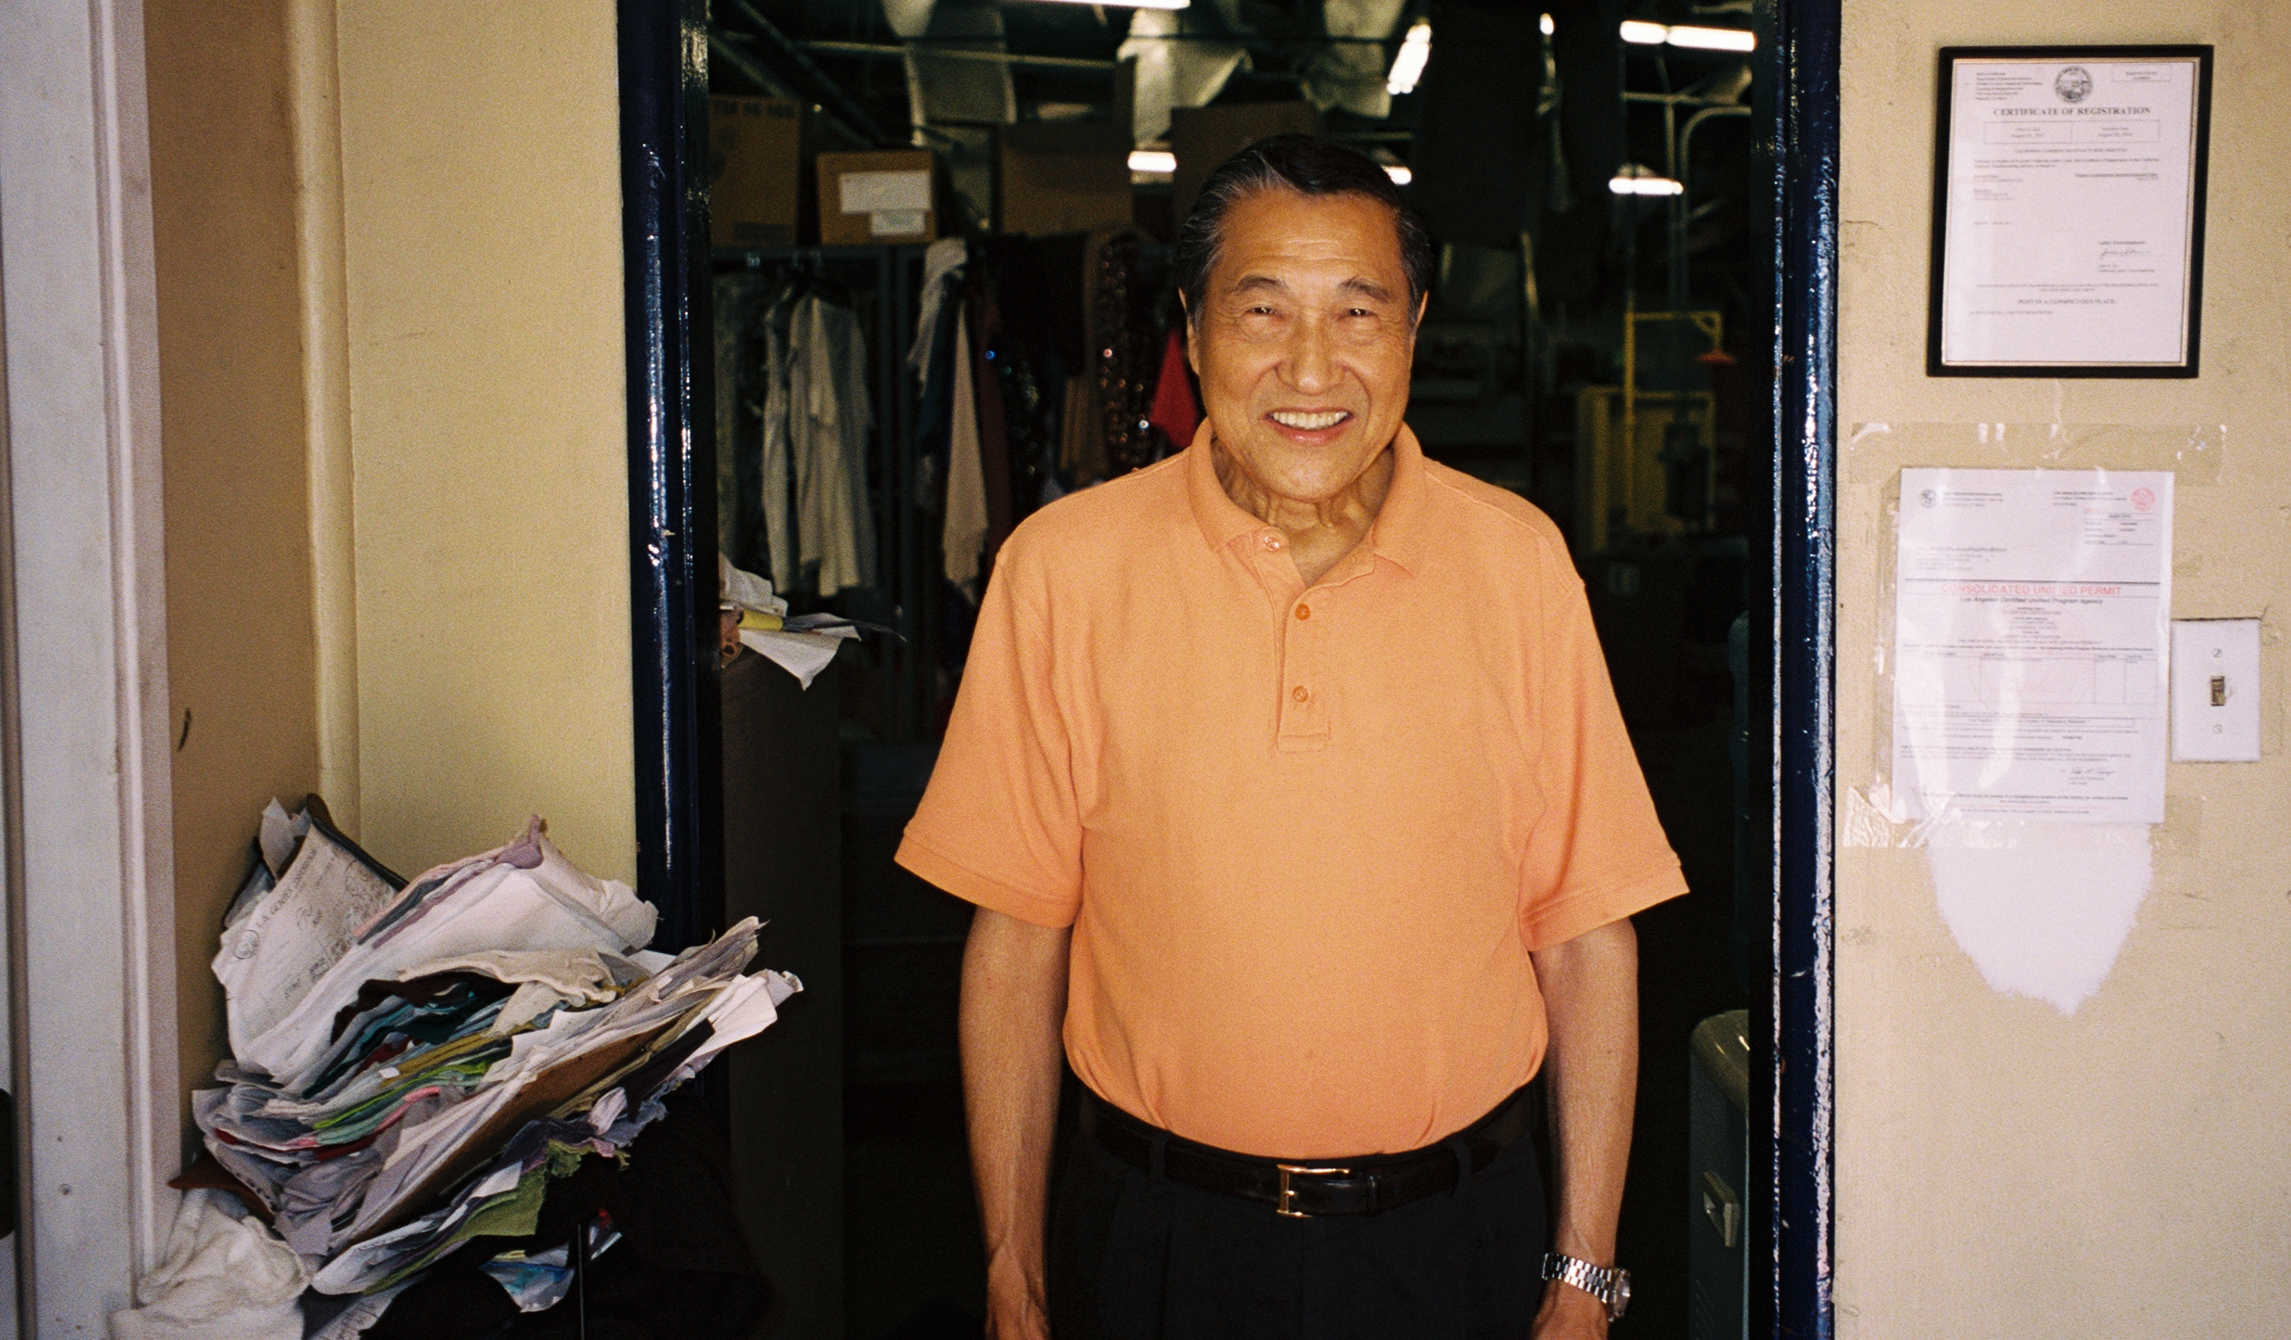 This is Johnny. Originally from the Philippines, Johnny has been dyeing and finishing fabrics and garments in LA for over 30 years. His dye house is one of the most well respected in the industry, known both for its quality and its creativity.